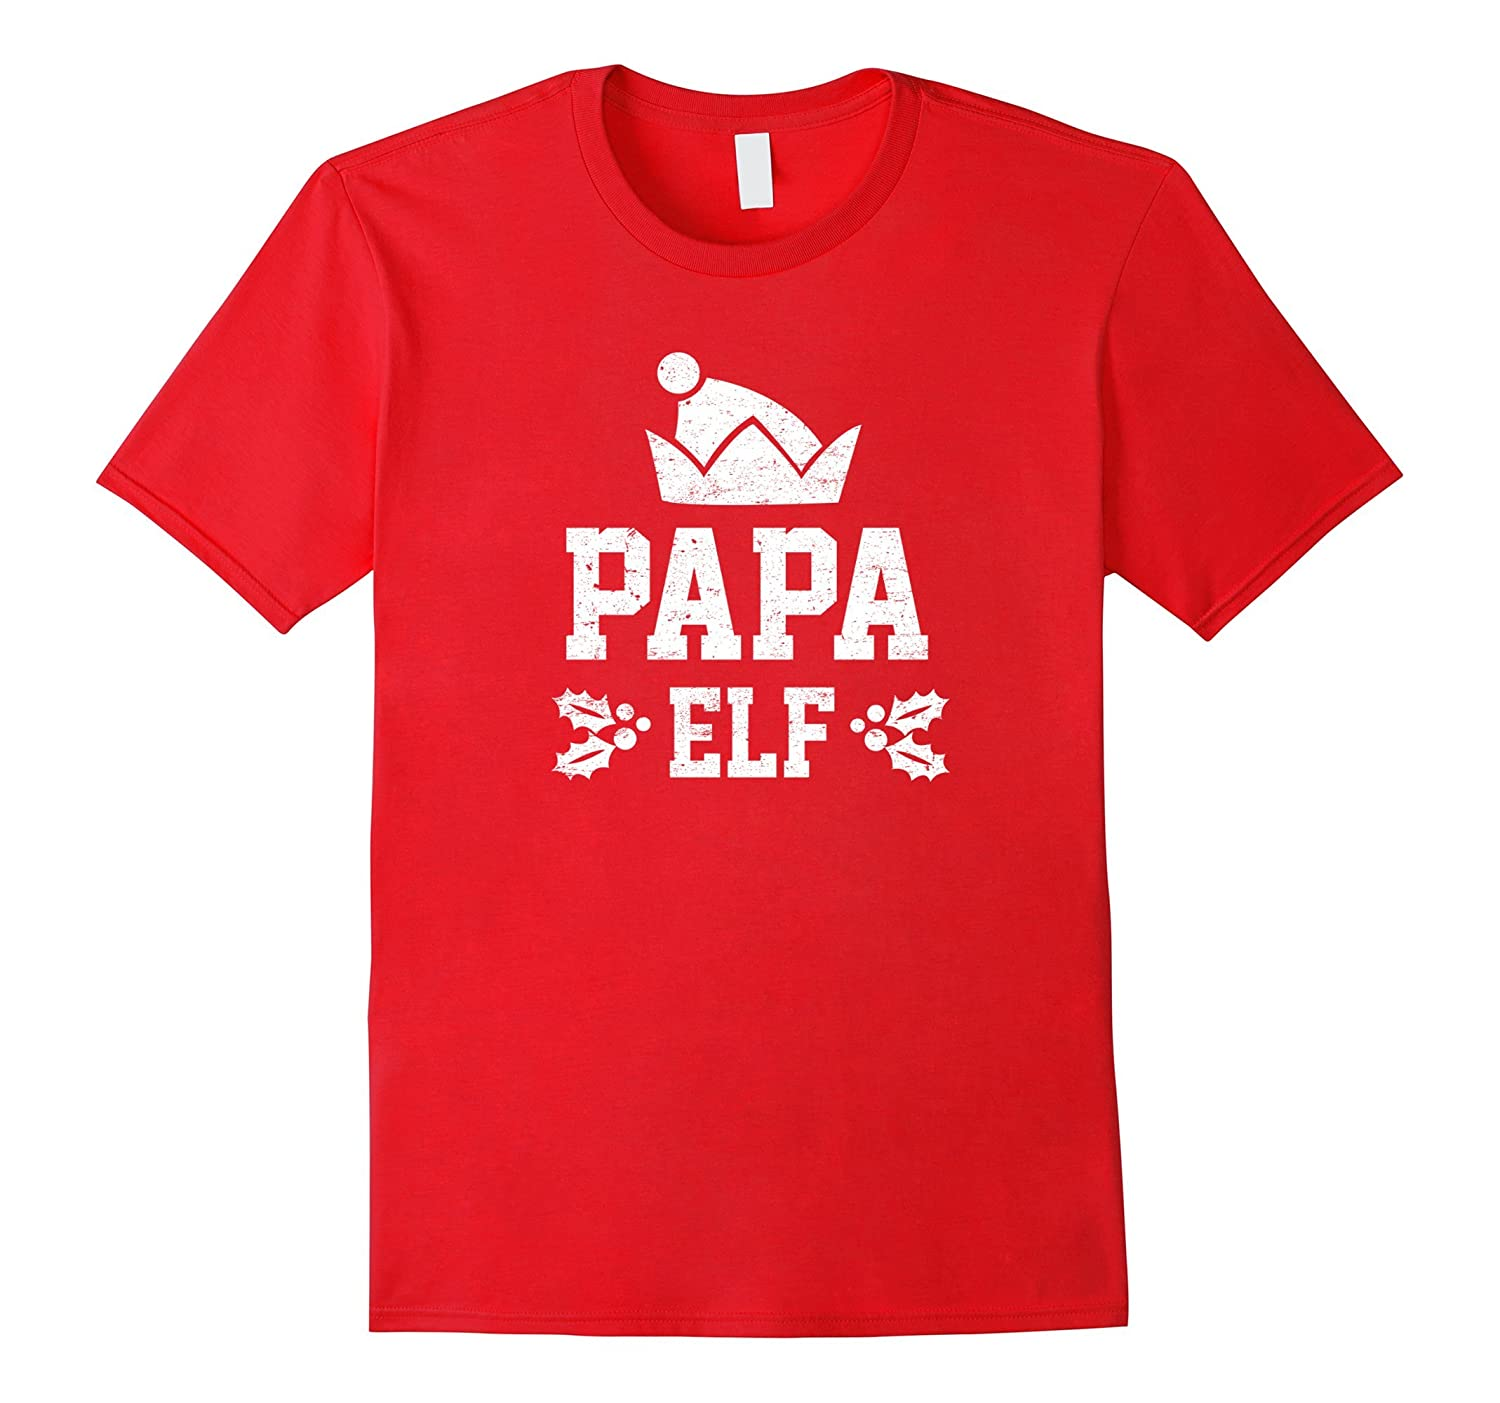 Papa Elf Pajama Christmas Holiday Season Funny Tshirt-FL